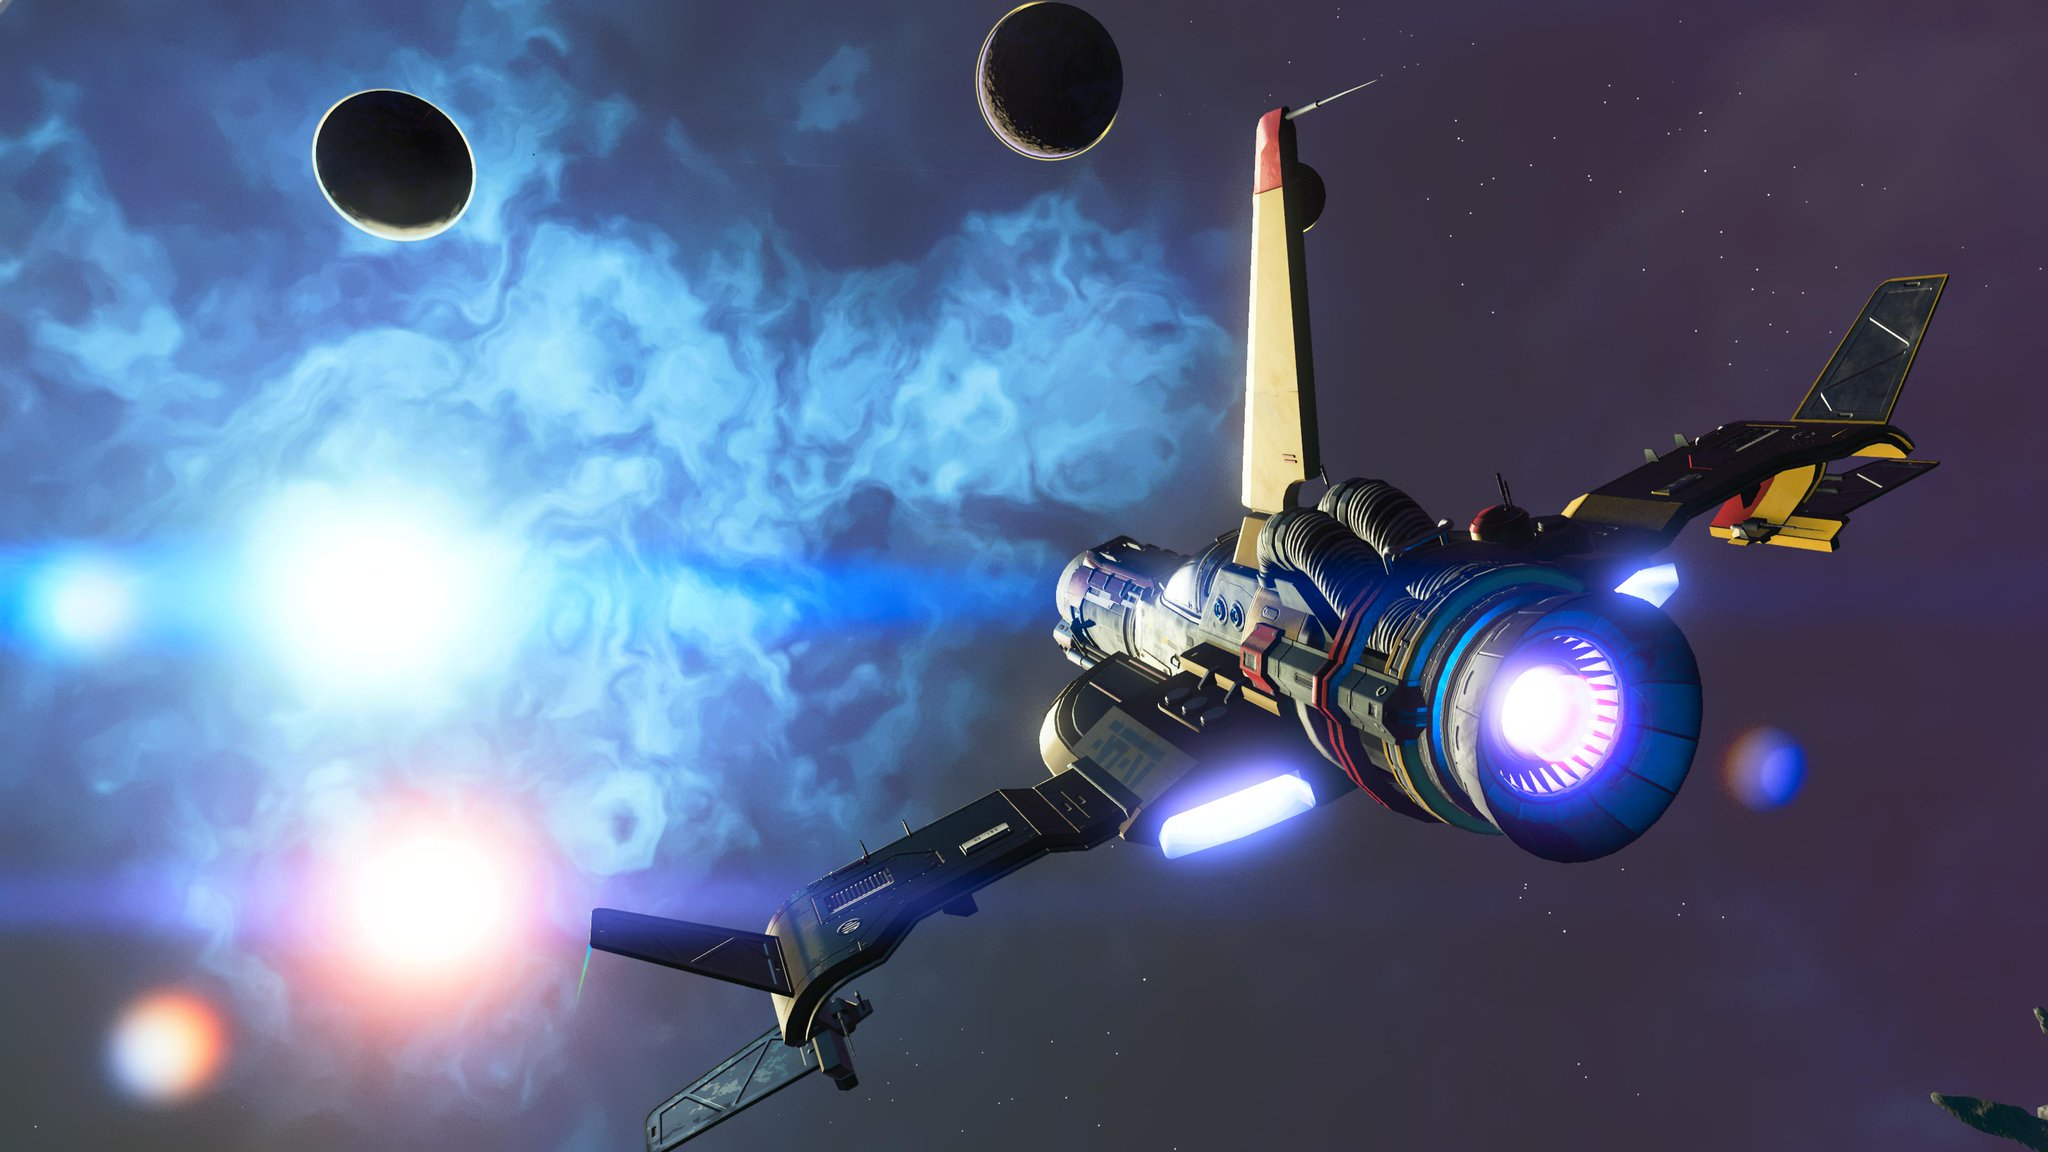 A binary star system, a spaceship flying through space towards a nebula and two planets.